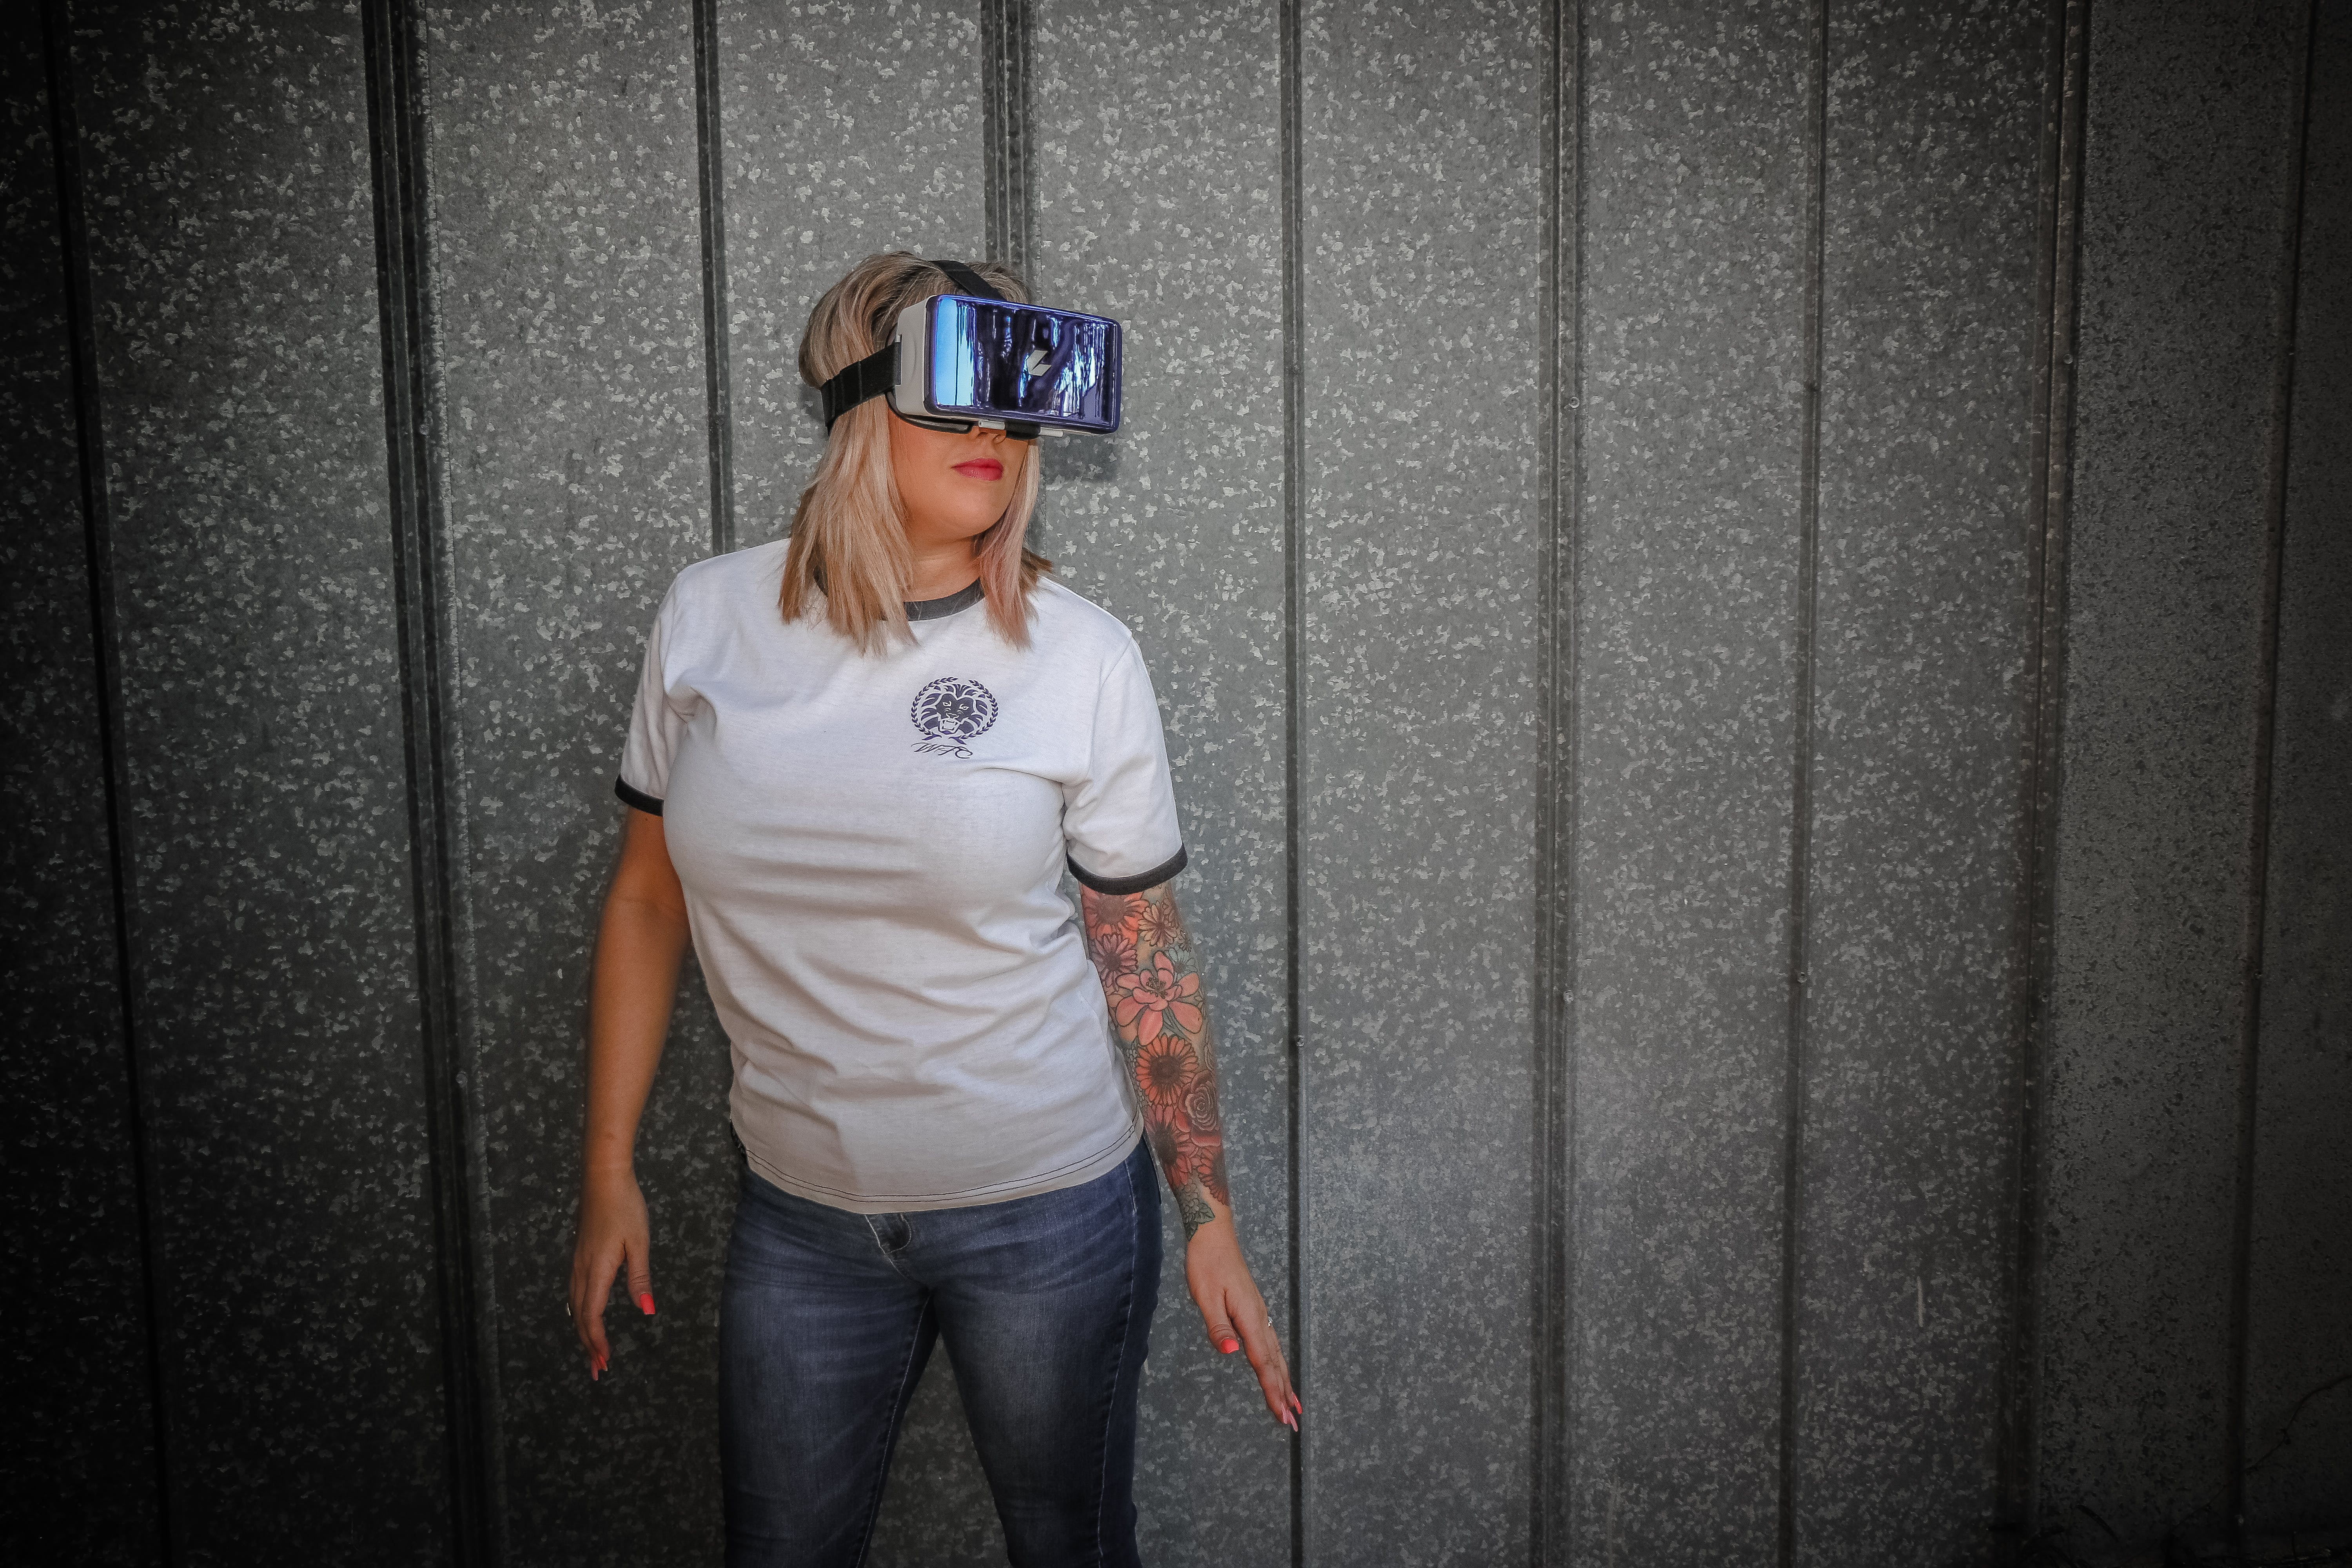 Photograph of Woman Wearing Vr Glass in Front of Wall